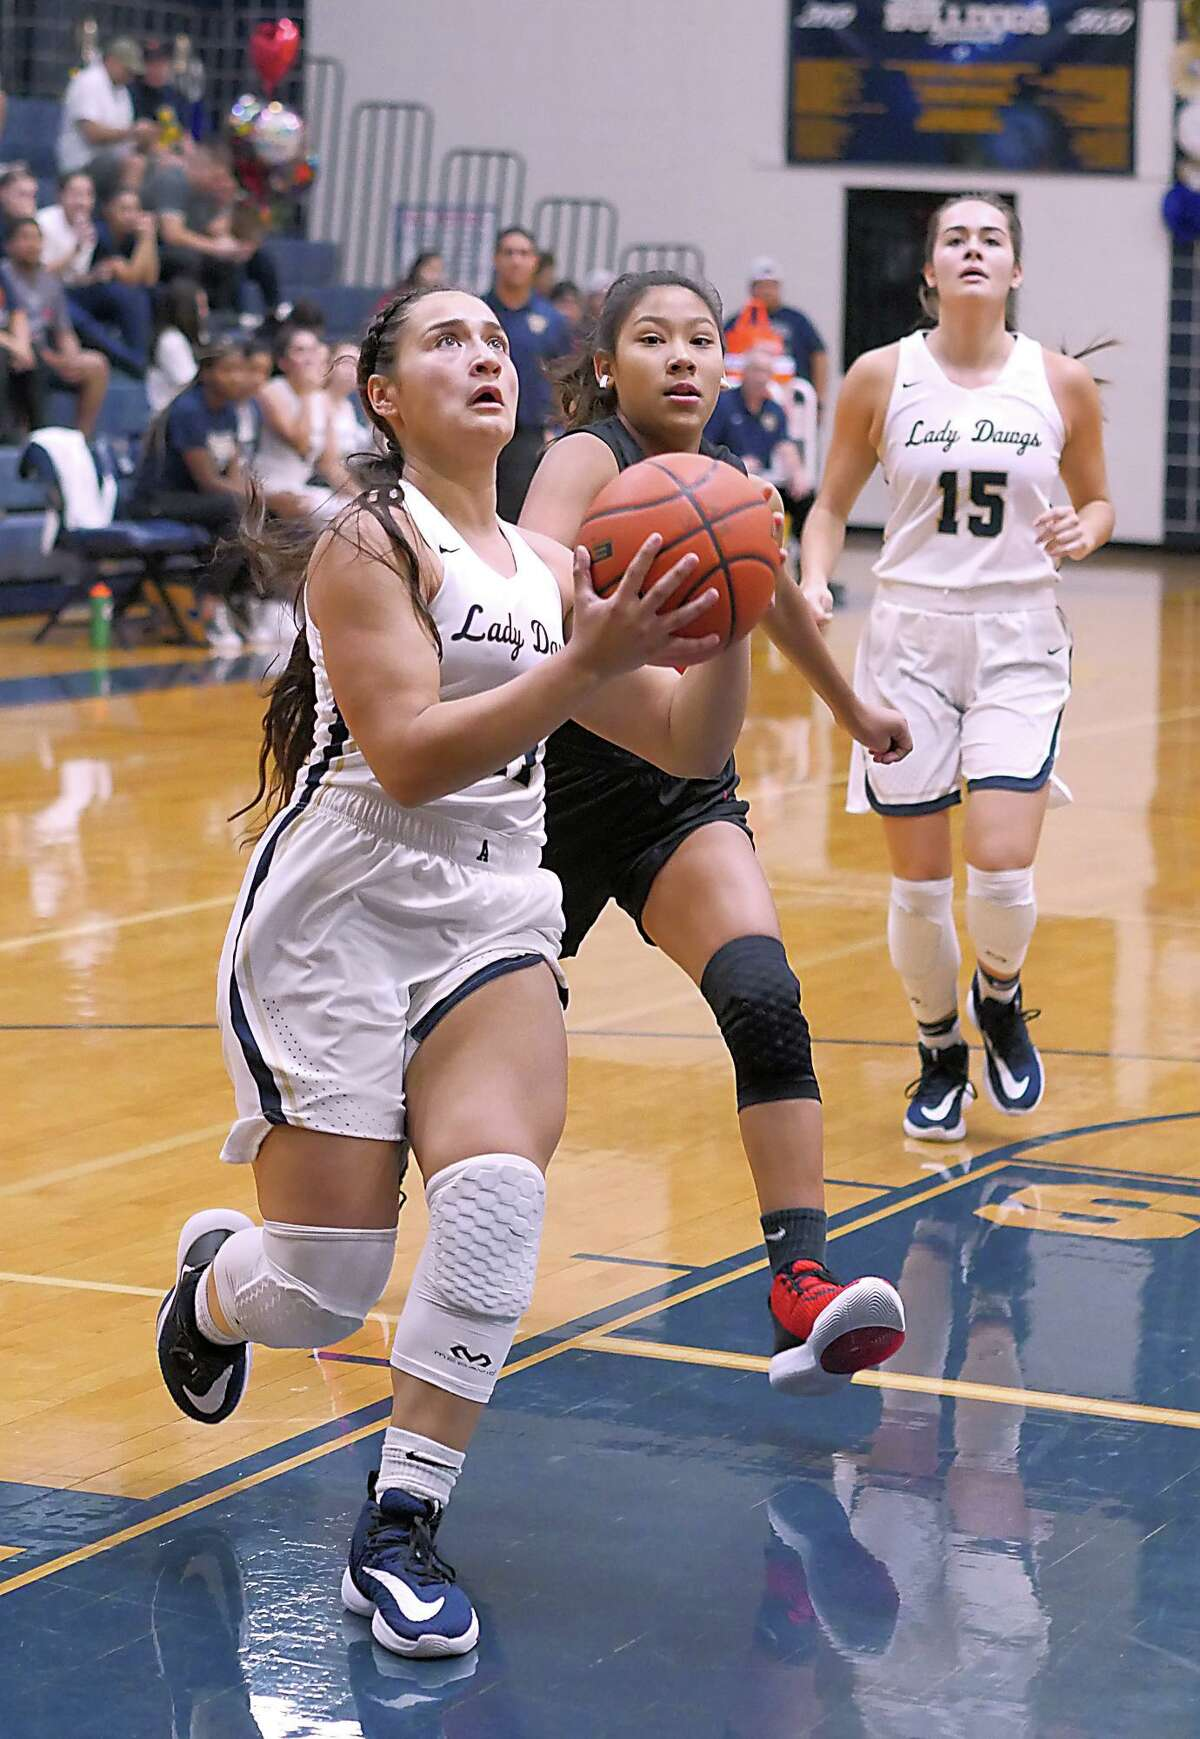 Kayla Herrera ranked second in the city averaging 13.6 points per game in her first varsity season at Alexander.